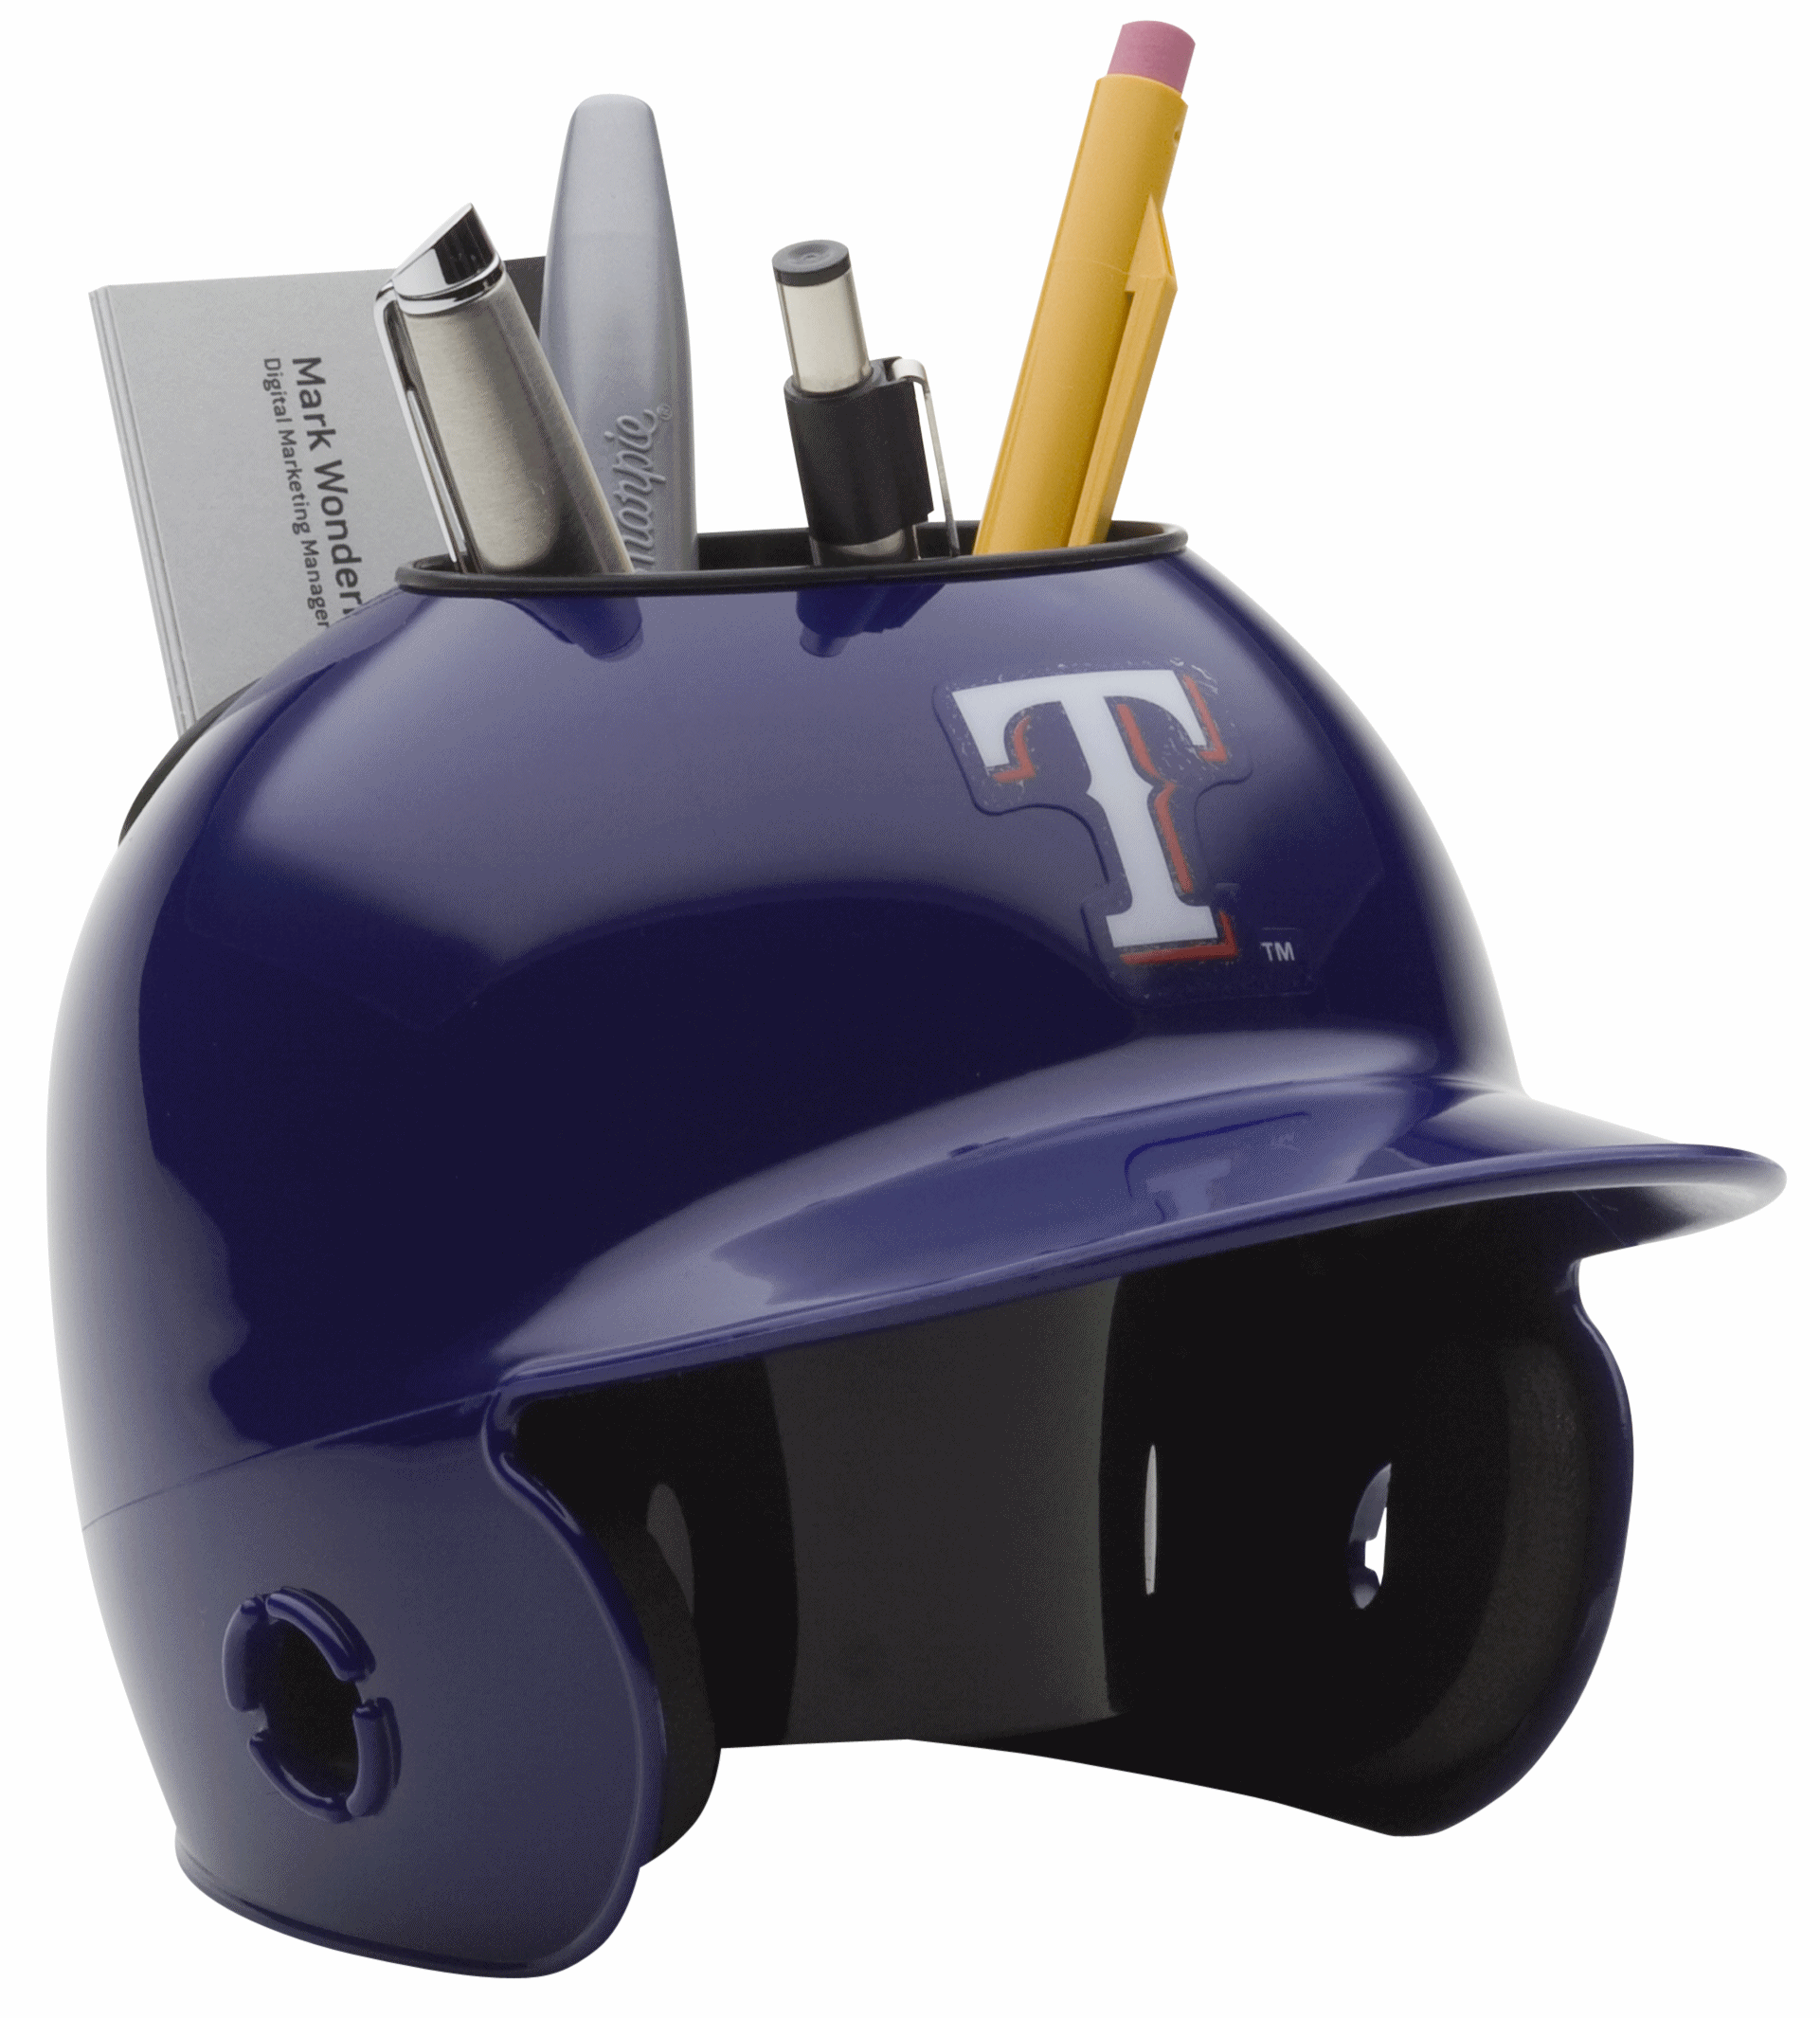 Texas Rangers Miniature Batters Helmet Desk Caddy